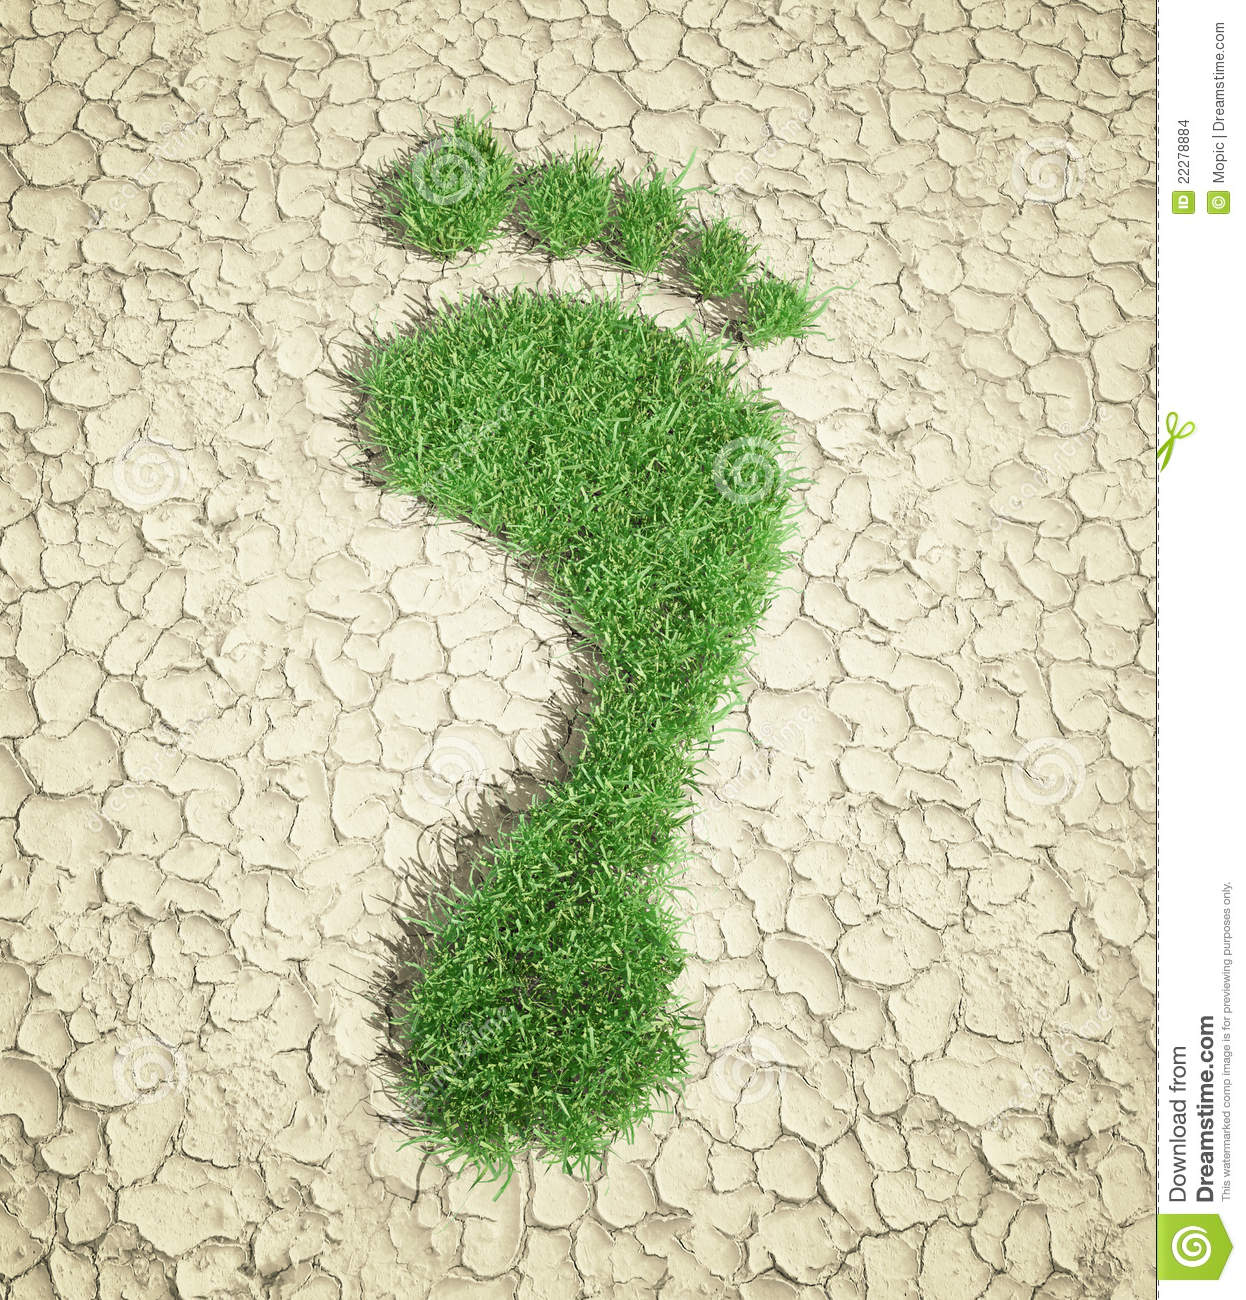 Concept of ecological footprint